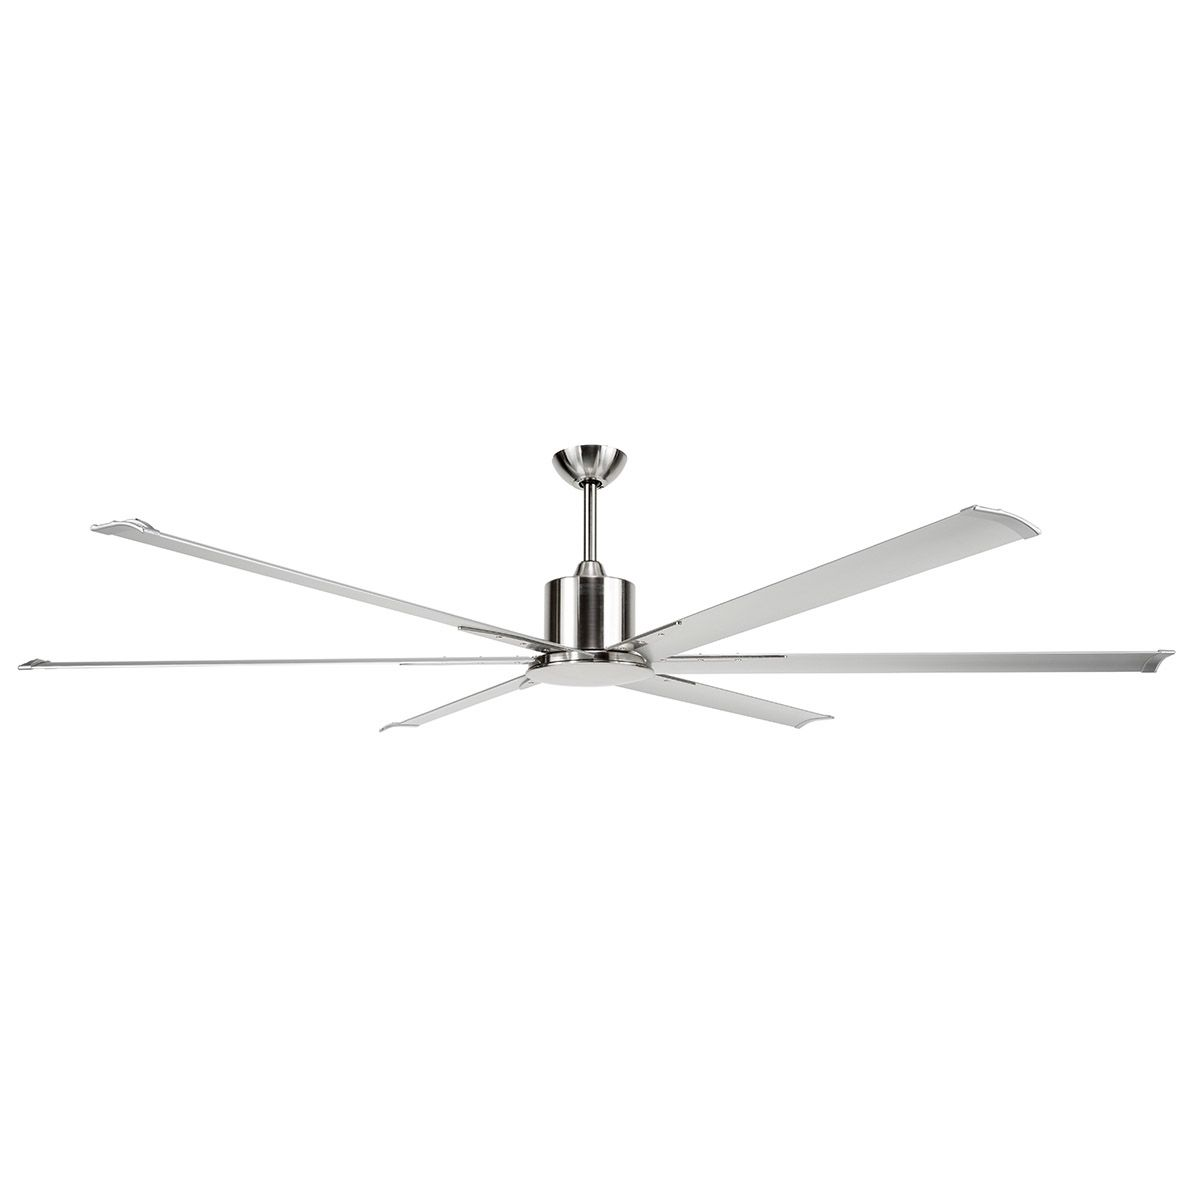 downrod home bronze ga large outdoor great blades eye mount accents ceilings ceiling fans pretty idyllic rustic room ceilingfan extra interior design fan blade tro